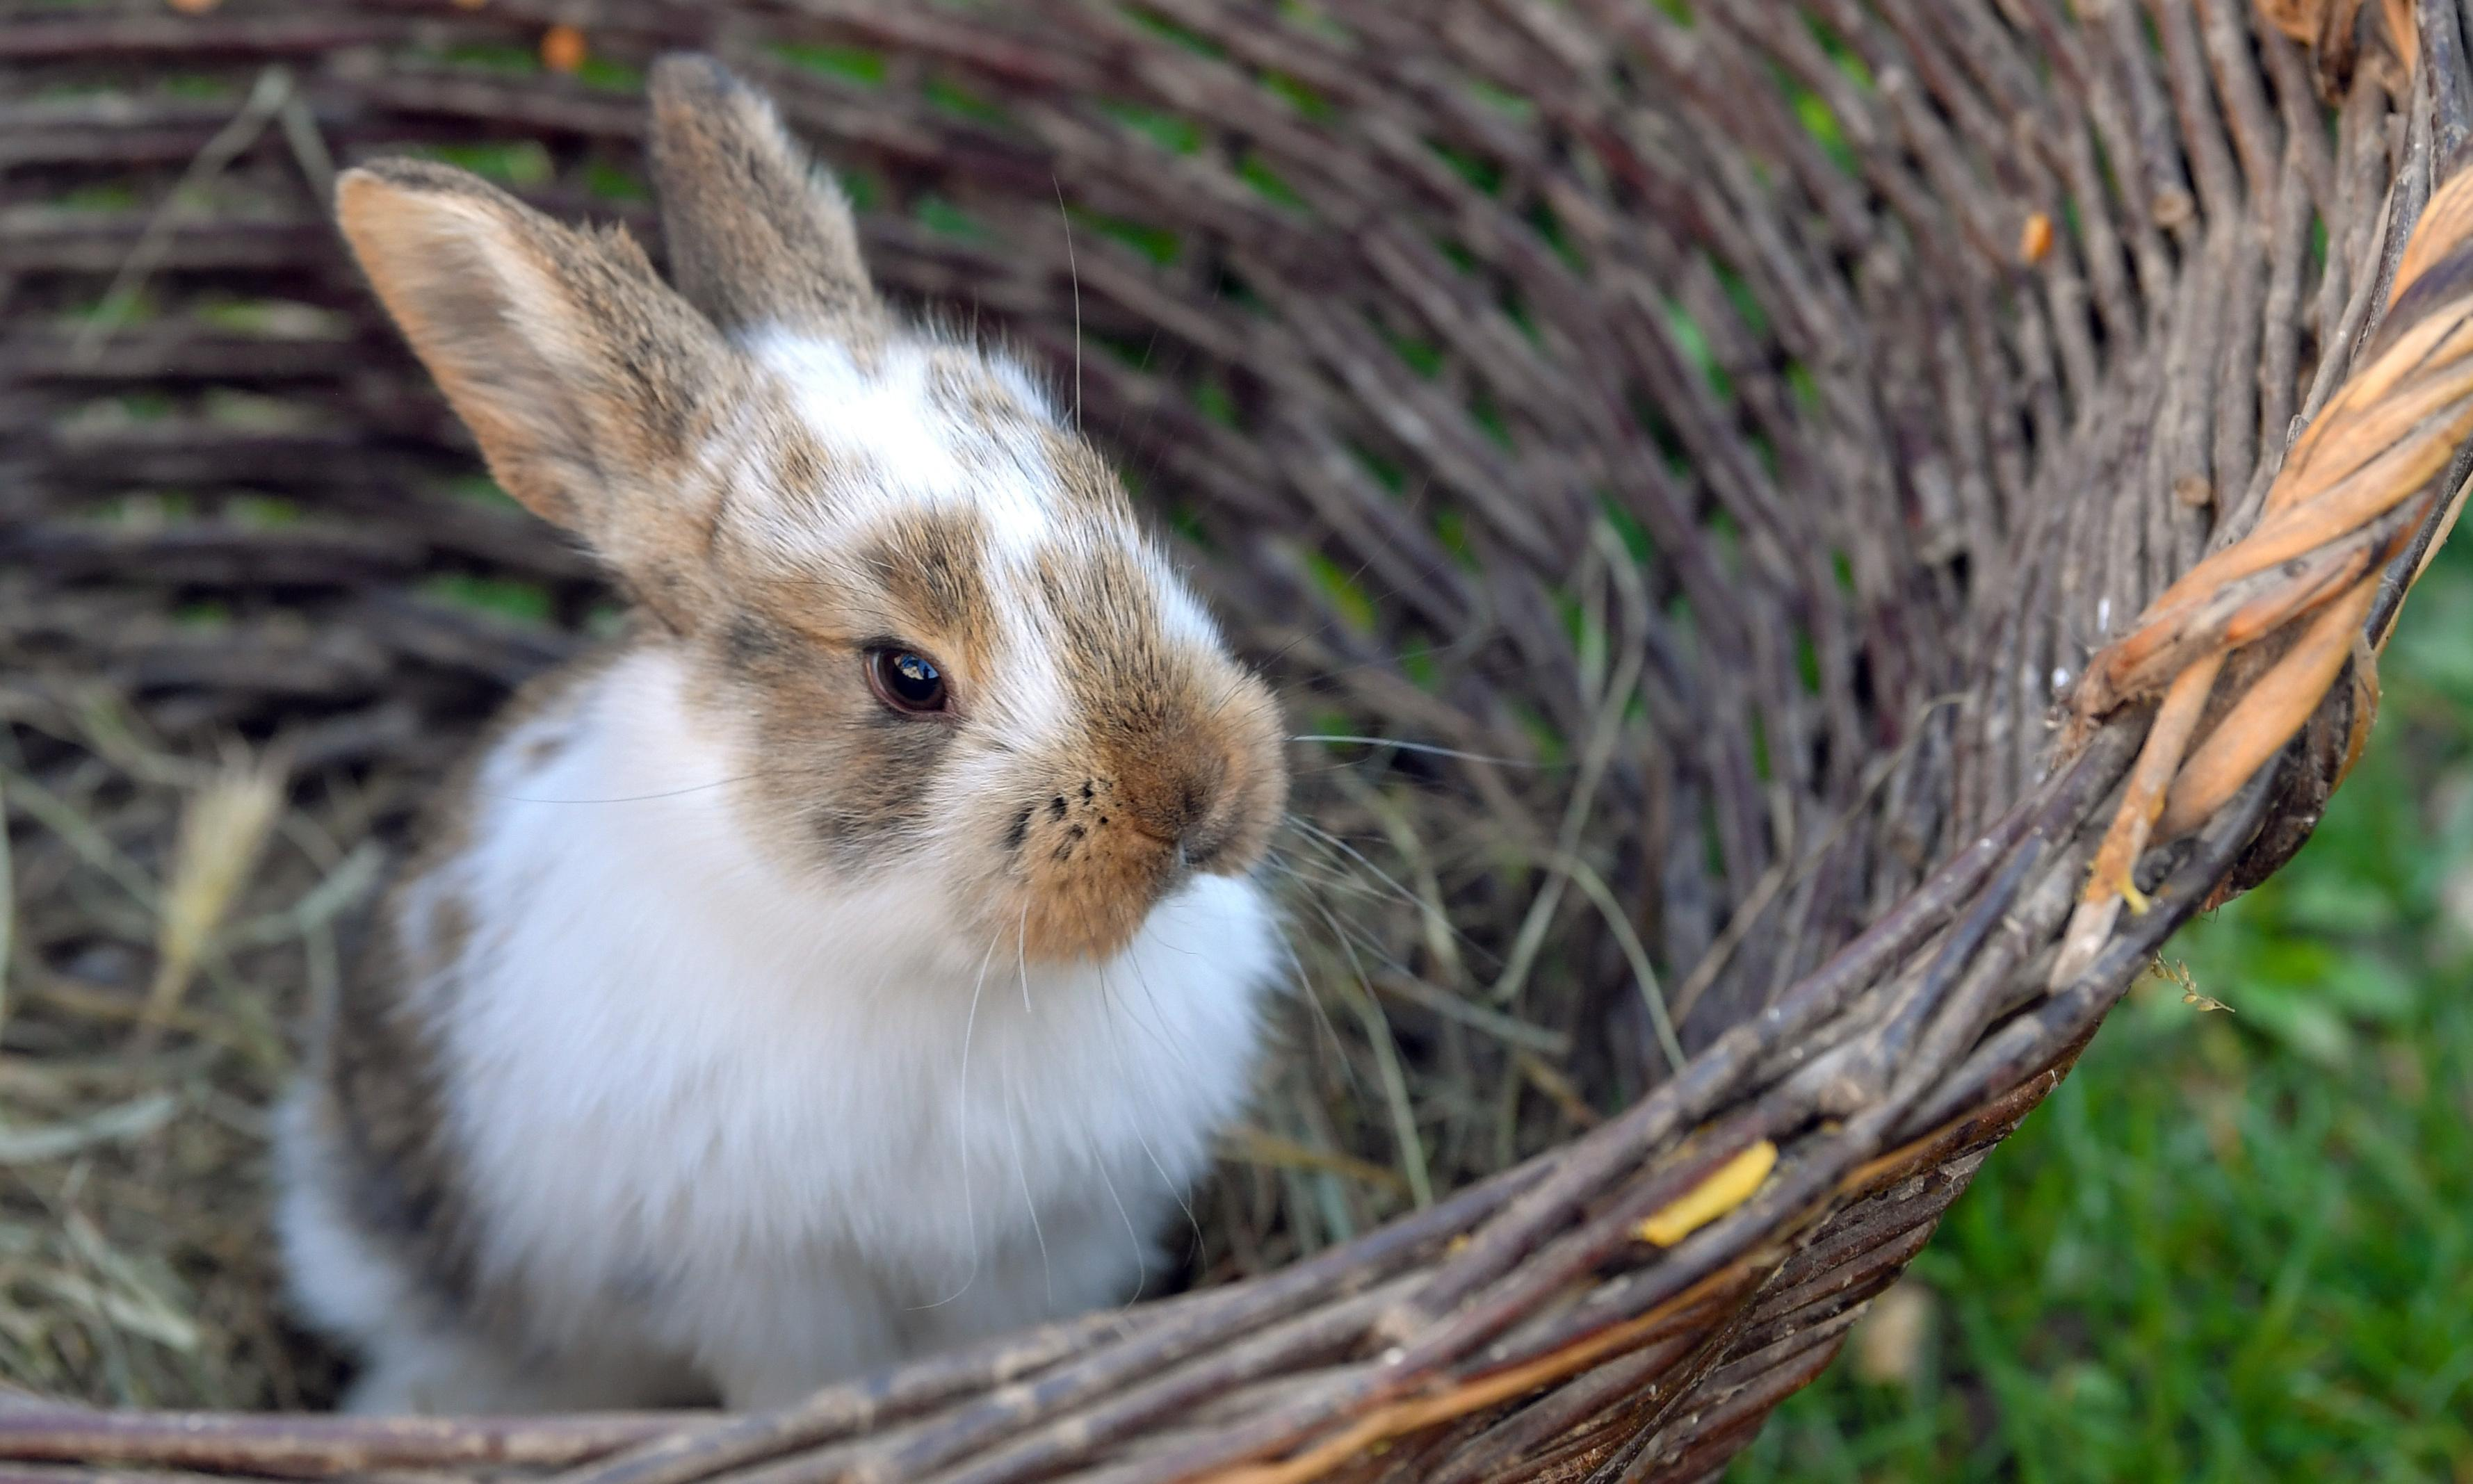 Ben-Fur: Romans brought rabbits to Britain, experts discover